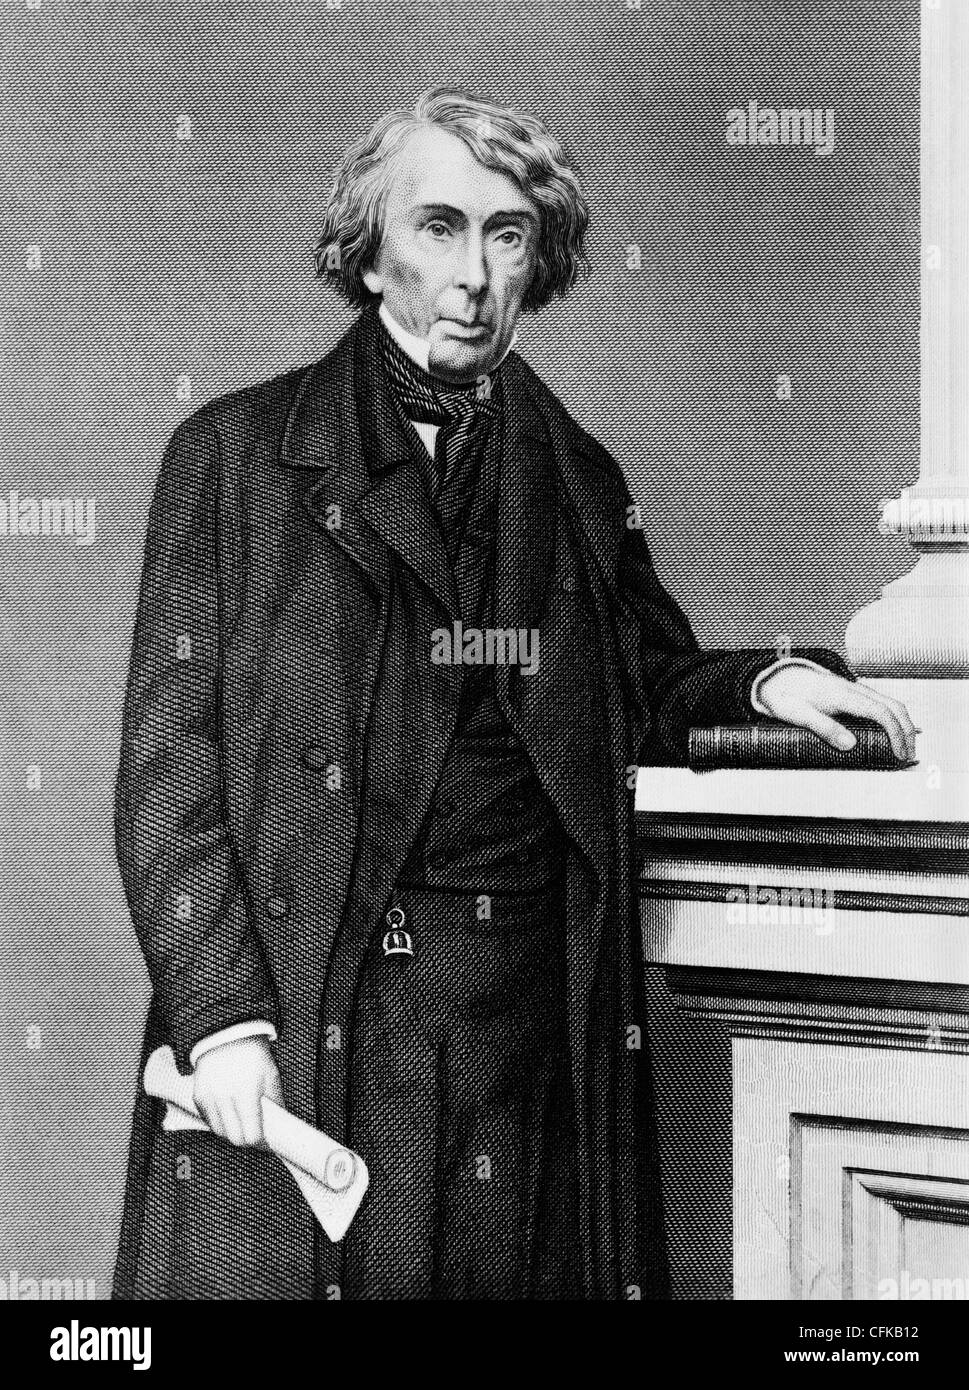 Vintage portrait print of American judge Roger B. Taney (1777 - 1864) - the fifth US Chief Justice (1836 - 1864). - Stock Image